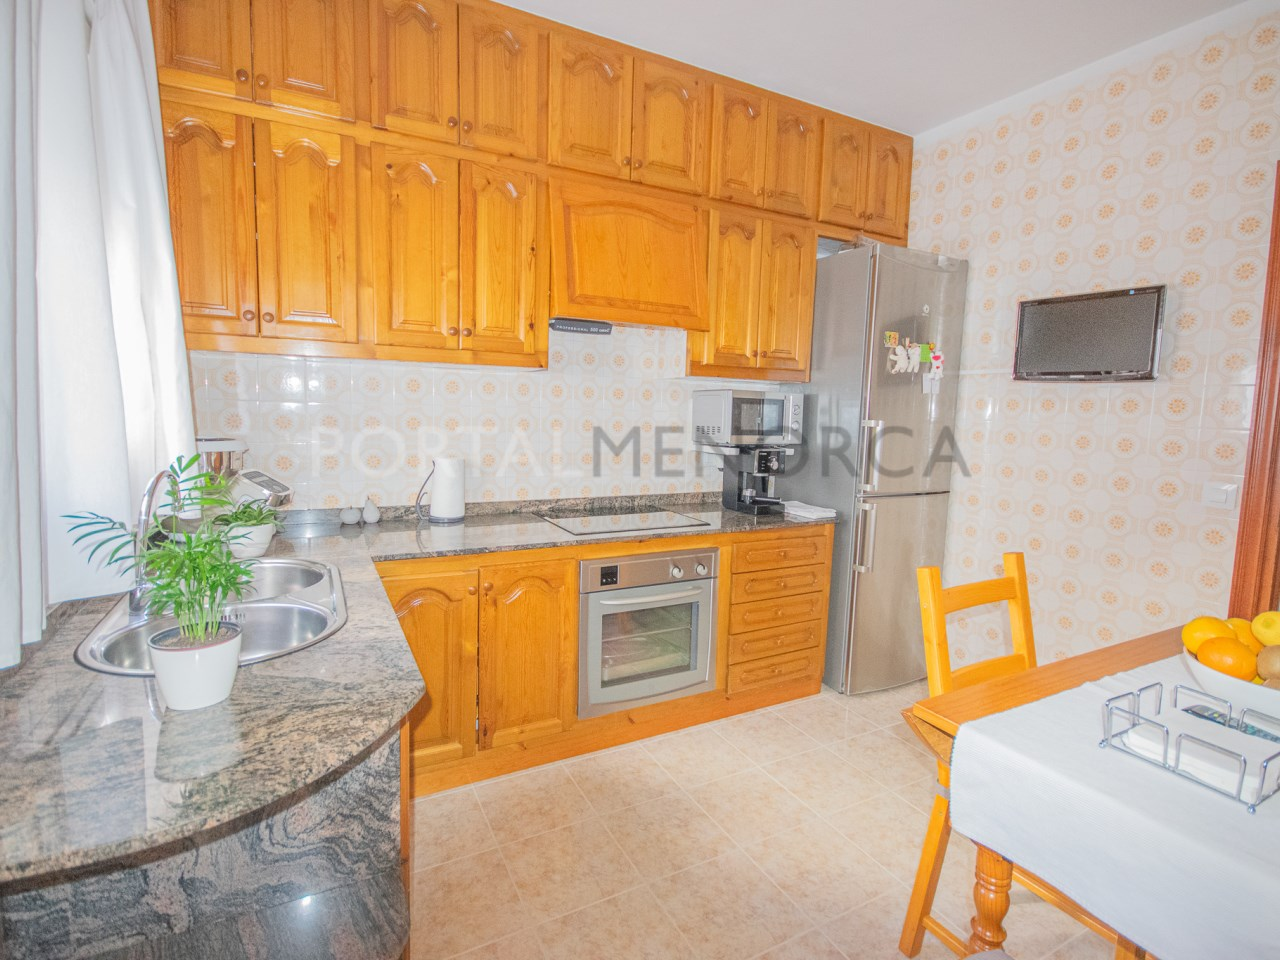 Fitted kitchen-diner